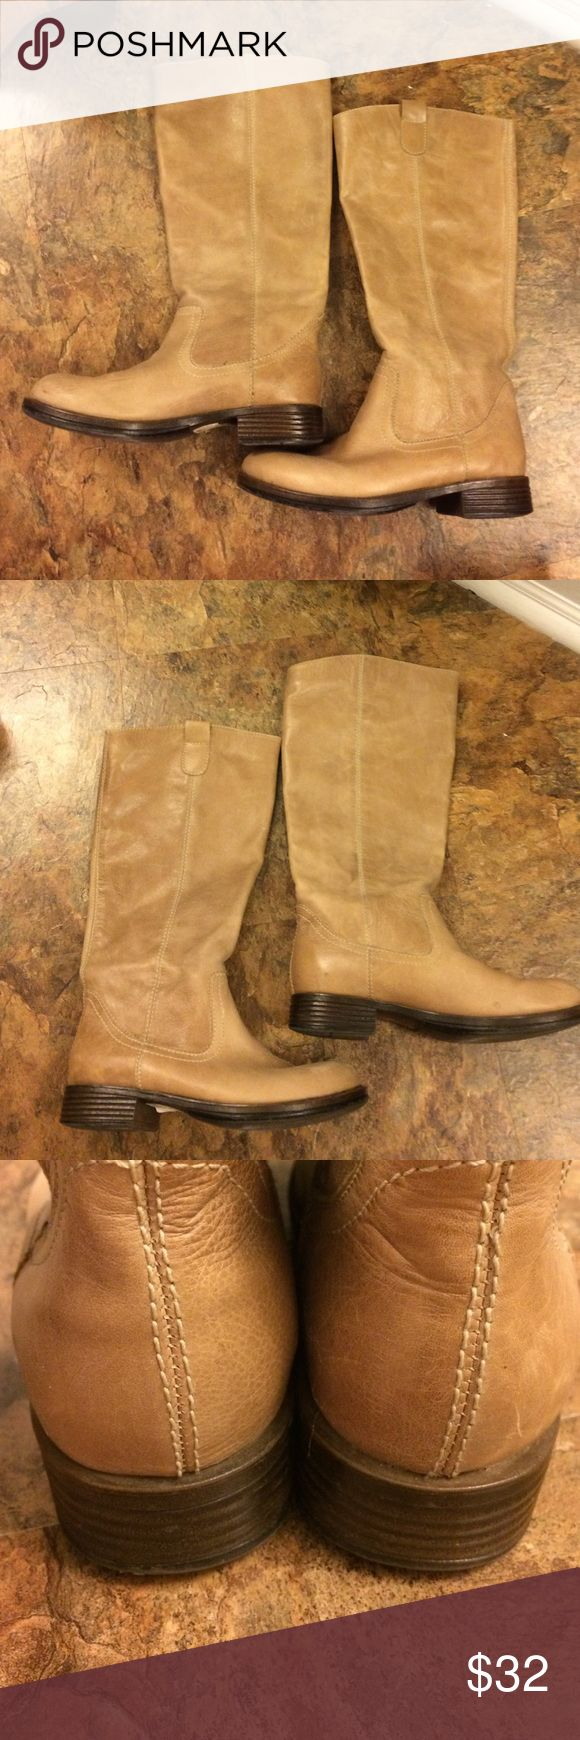 Super cute Tried and Tide ladies leather boots Tried And Tide leather boots. Great condition and size 6 medium. Taupe/tan colored and look great! Soft buttery leather! Tried And Tied Shoes Heeled Boots